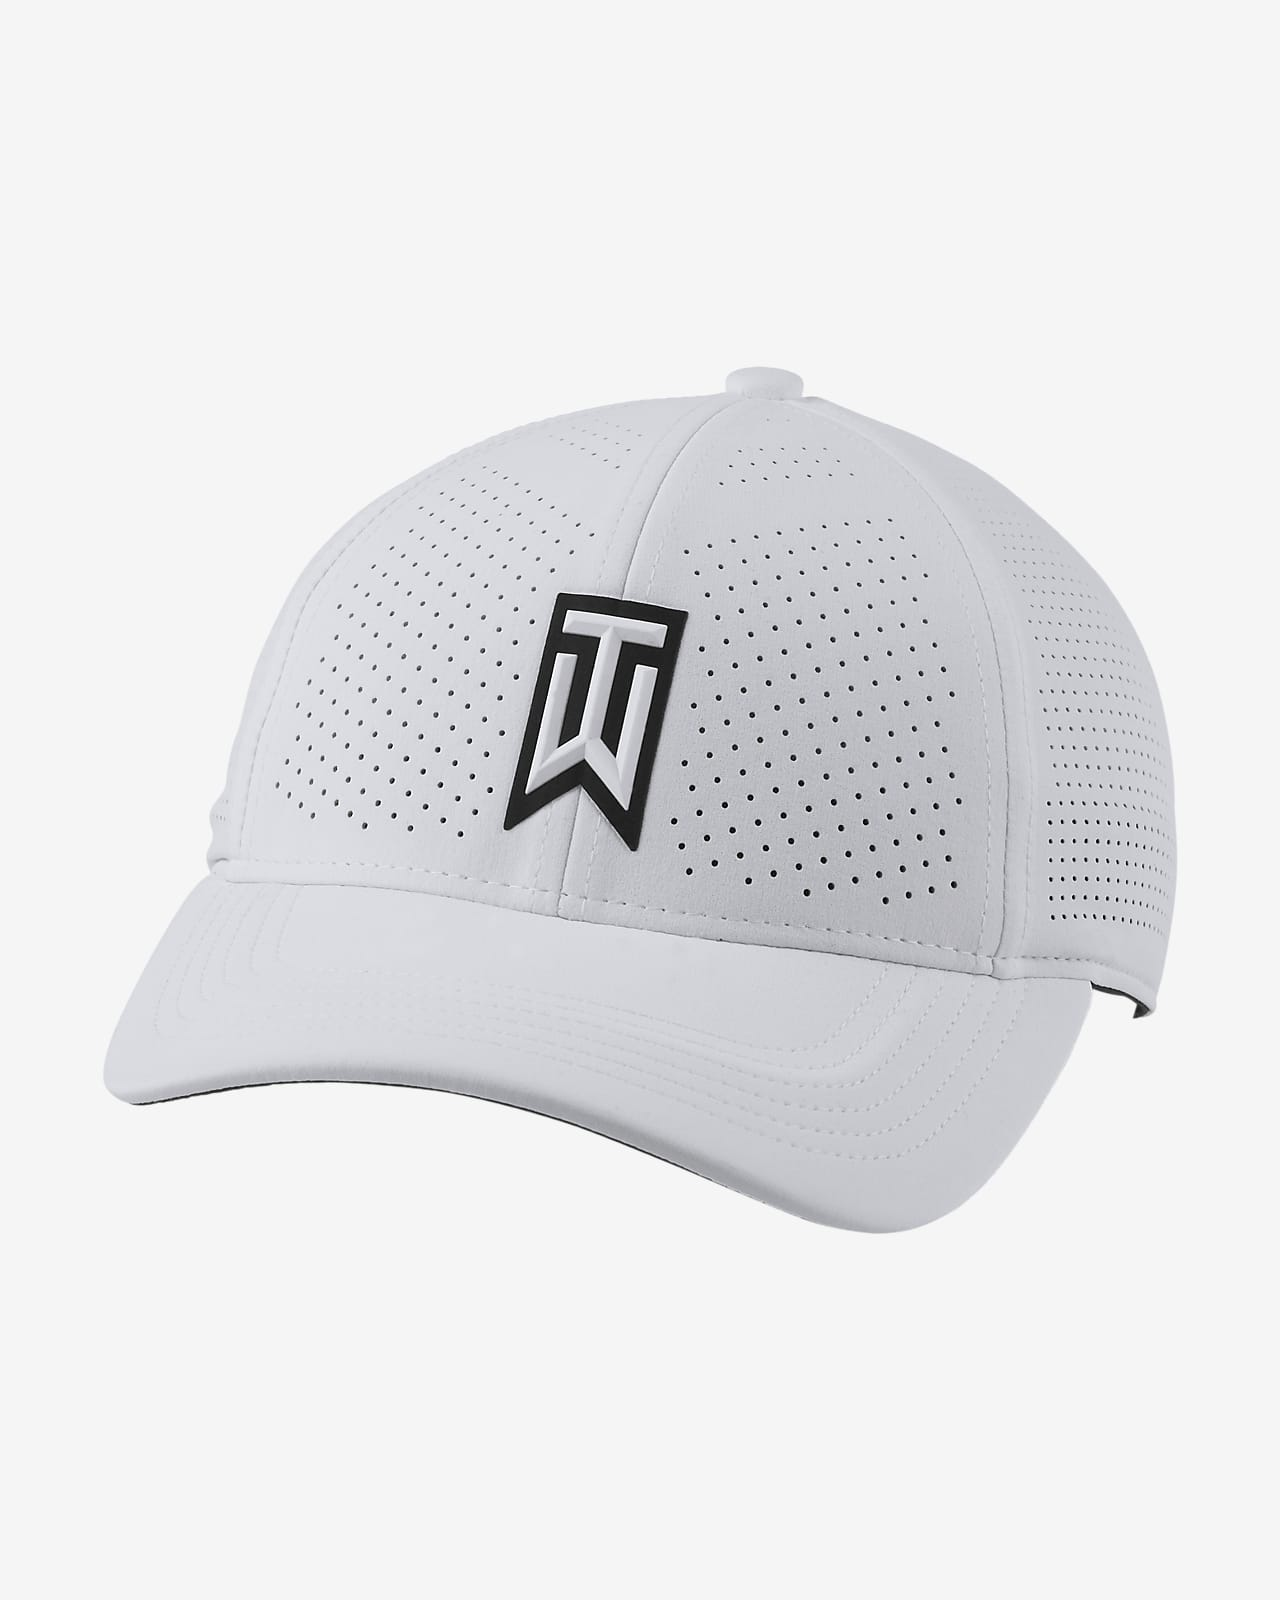 Nike AeroBill Tiger Woods Heritage86 Perforated 高尔夫运动帽